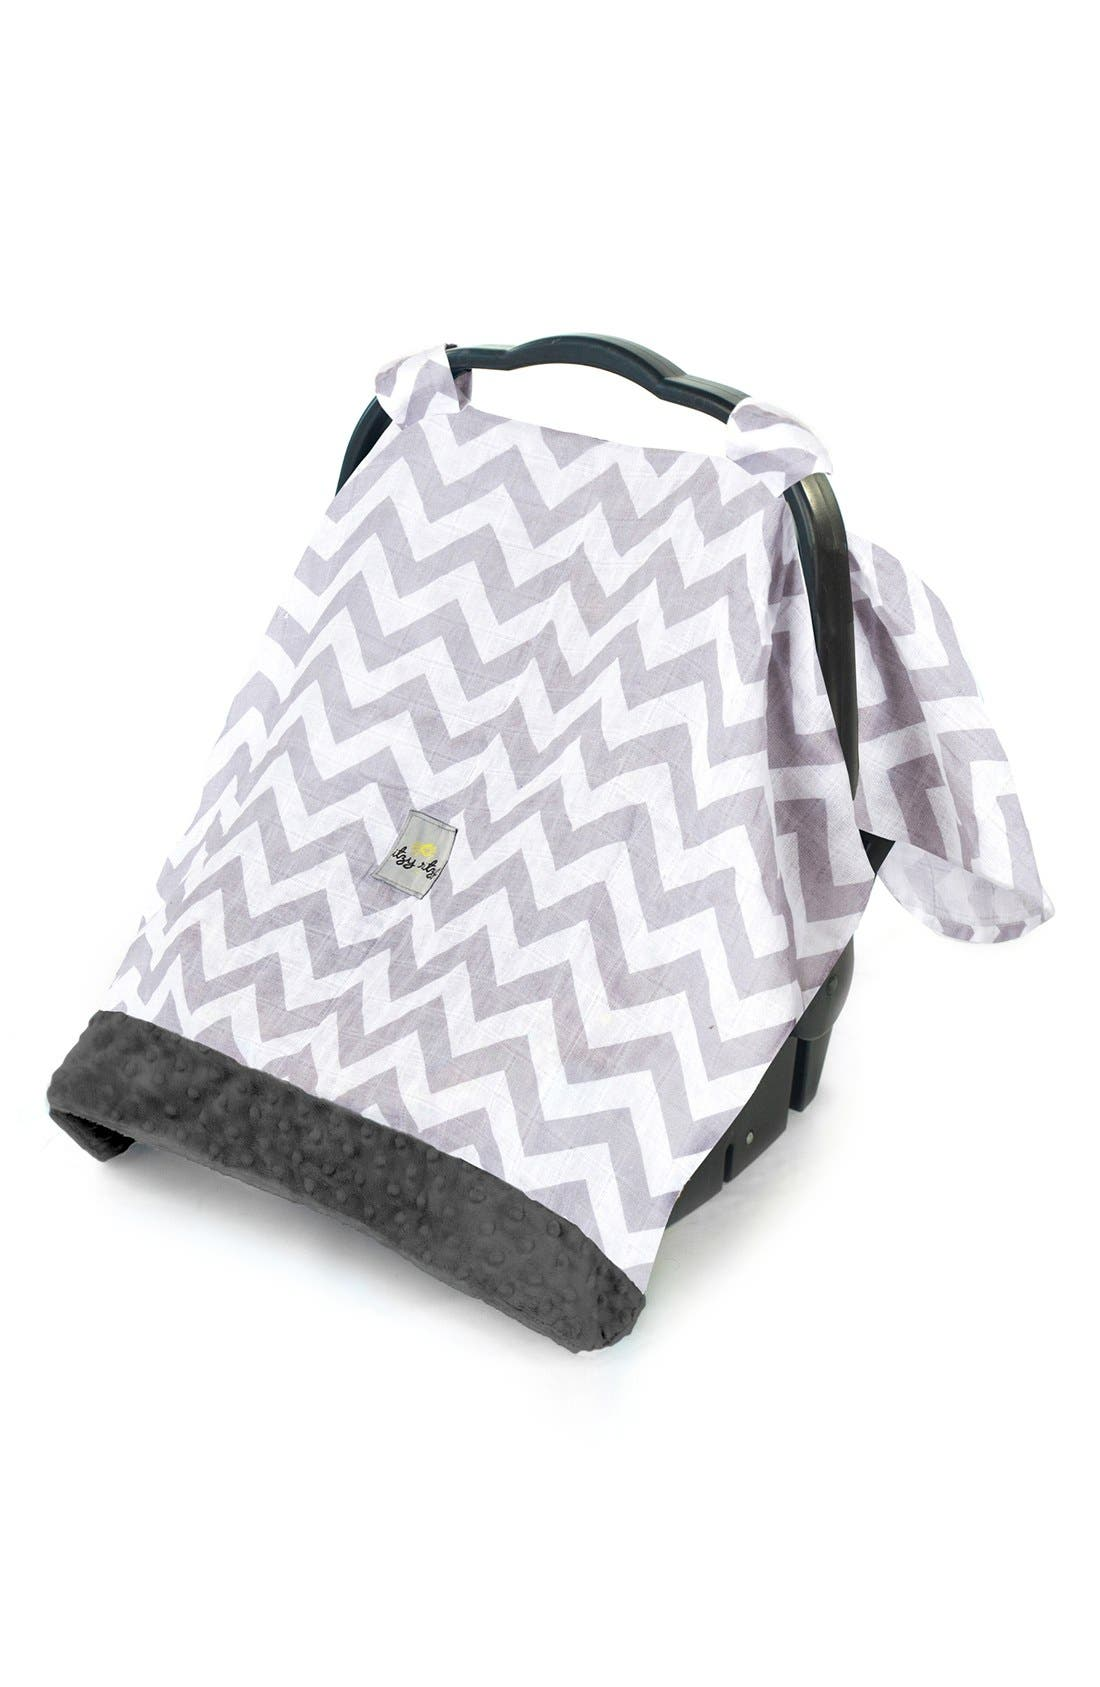 Main Image - Itzy Ritzy 'Cozy Happens™' Muslin Canopy & Tummy Time Mat